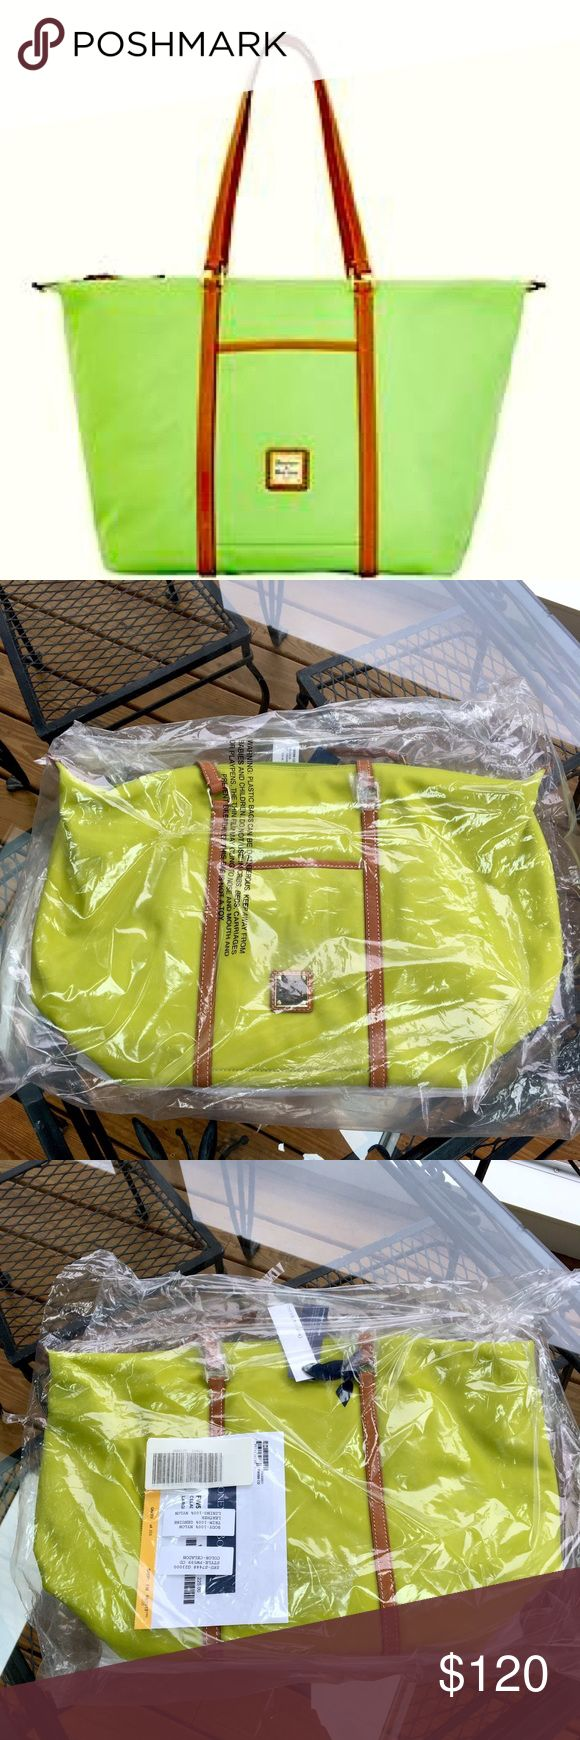 Large Green Tote bag This is a gorgeous, brand new with original packaging Dooney & Bourke tote bag! It is very fashionable but big enough to store anything! Dooney & Bourke Bags Totes